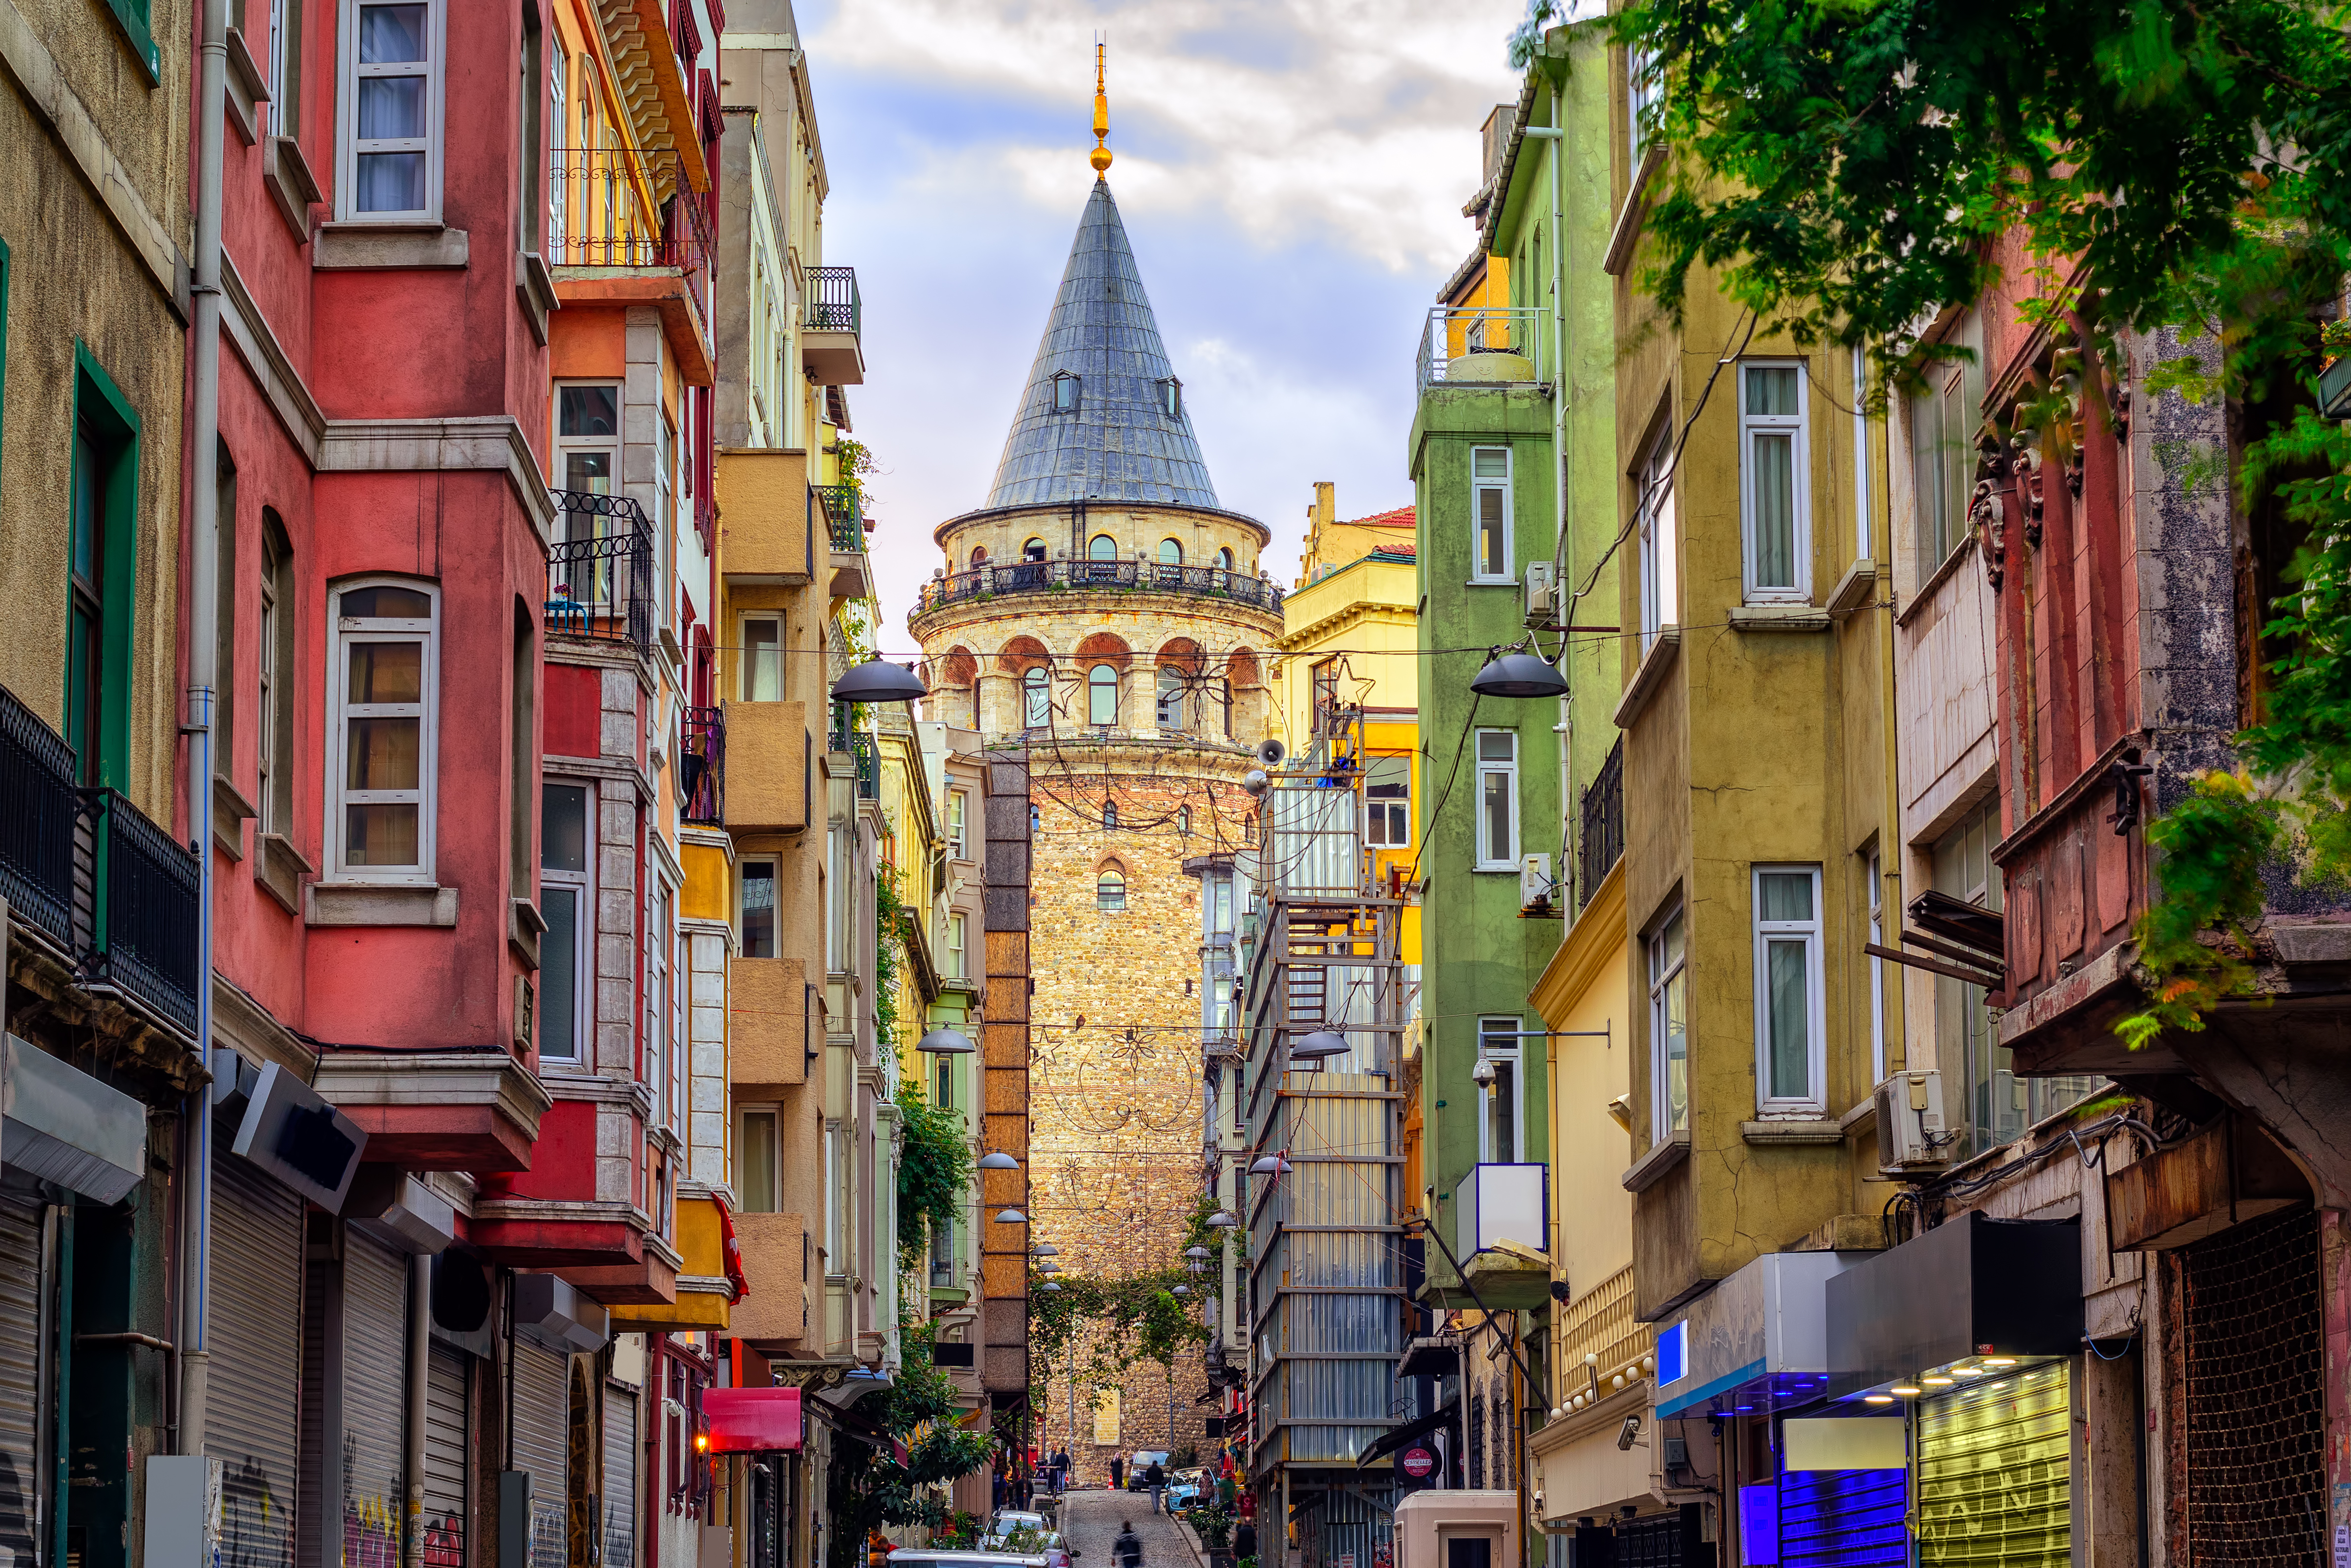 Galata Tower and the street in the Old T